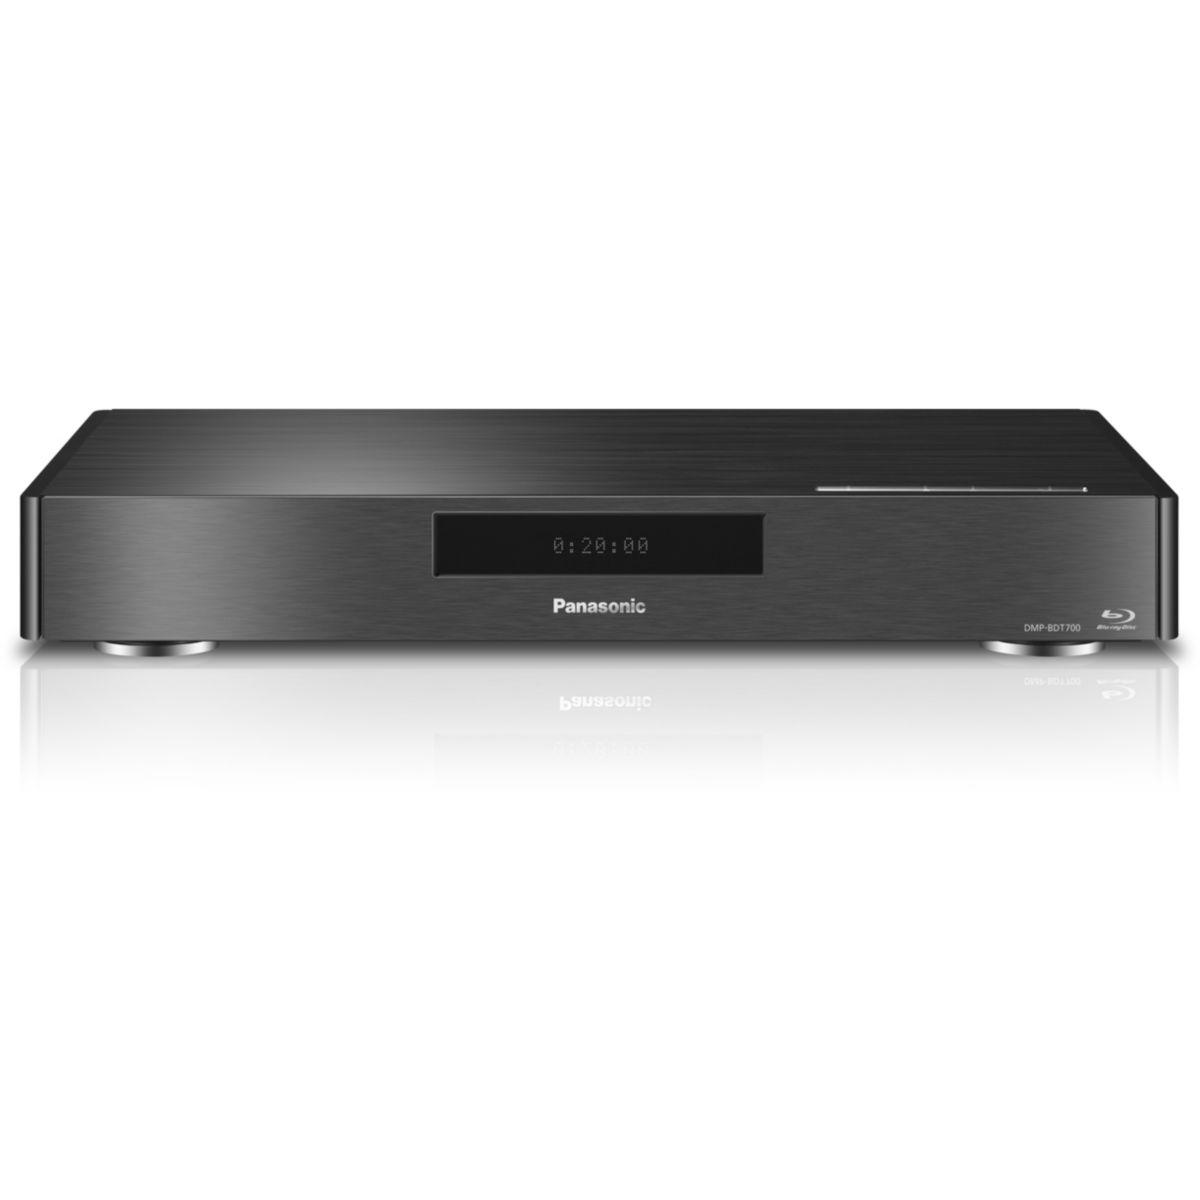 Lecteur blu-ray panasonic dmpbdt700 (photo)